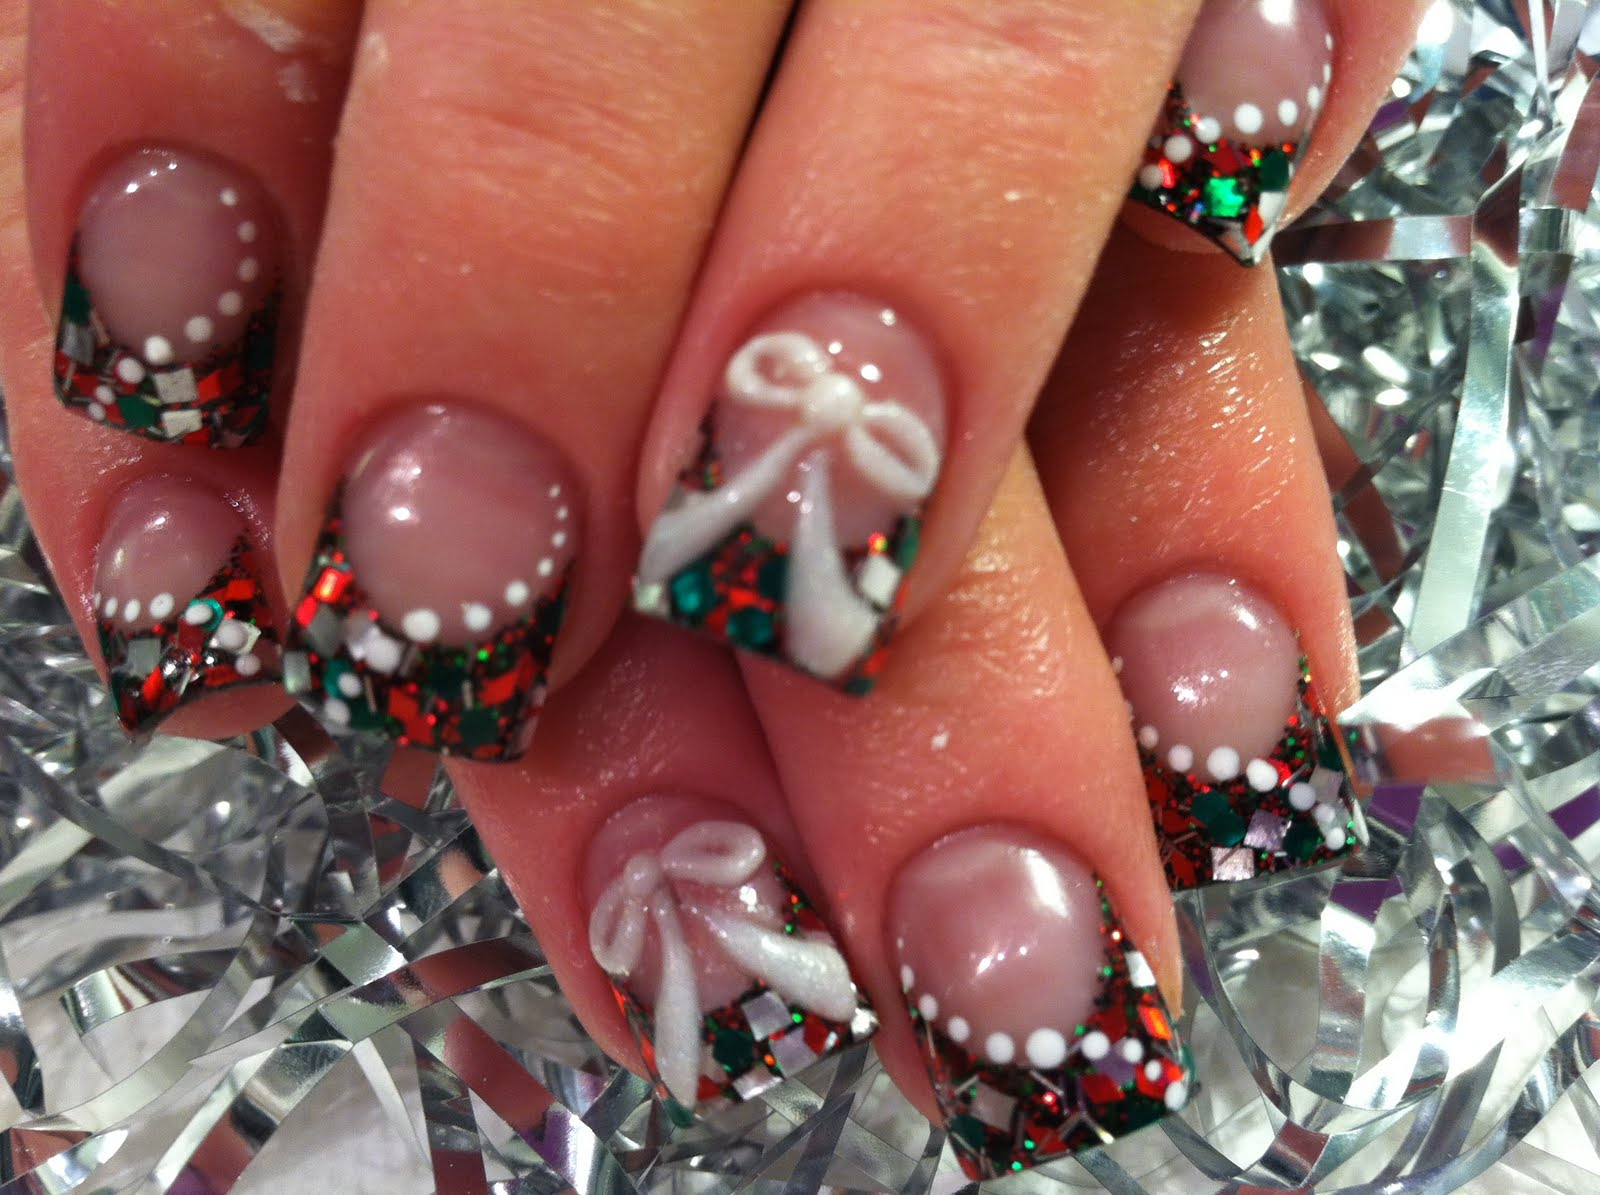 Christmas nail art nail designs for occasions nailkart cute nail art ideas prinsesfo Choice Image